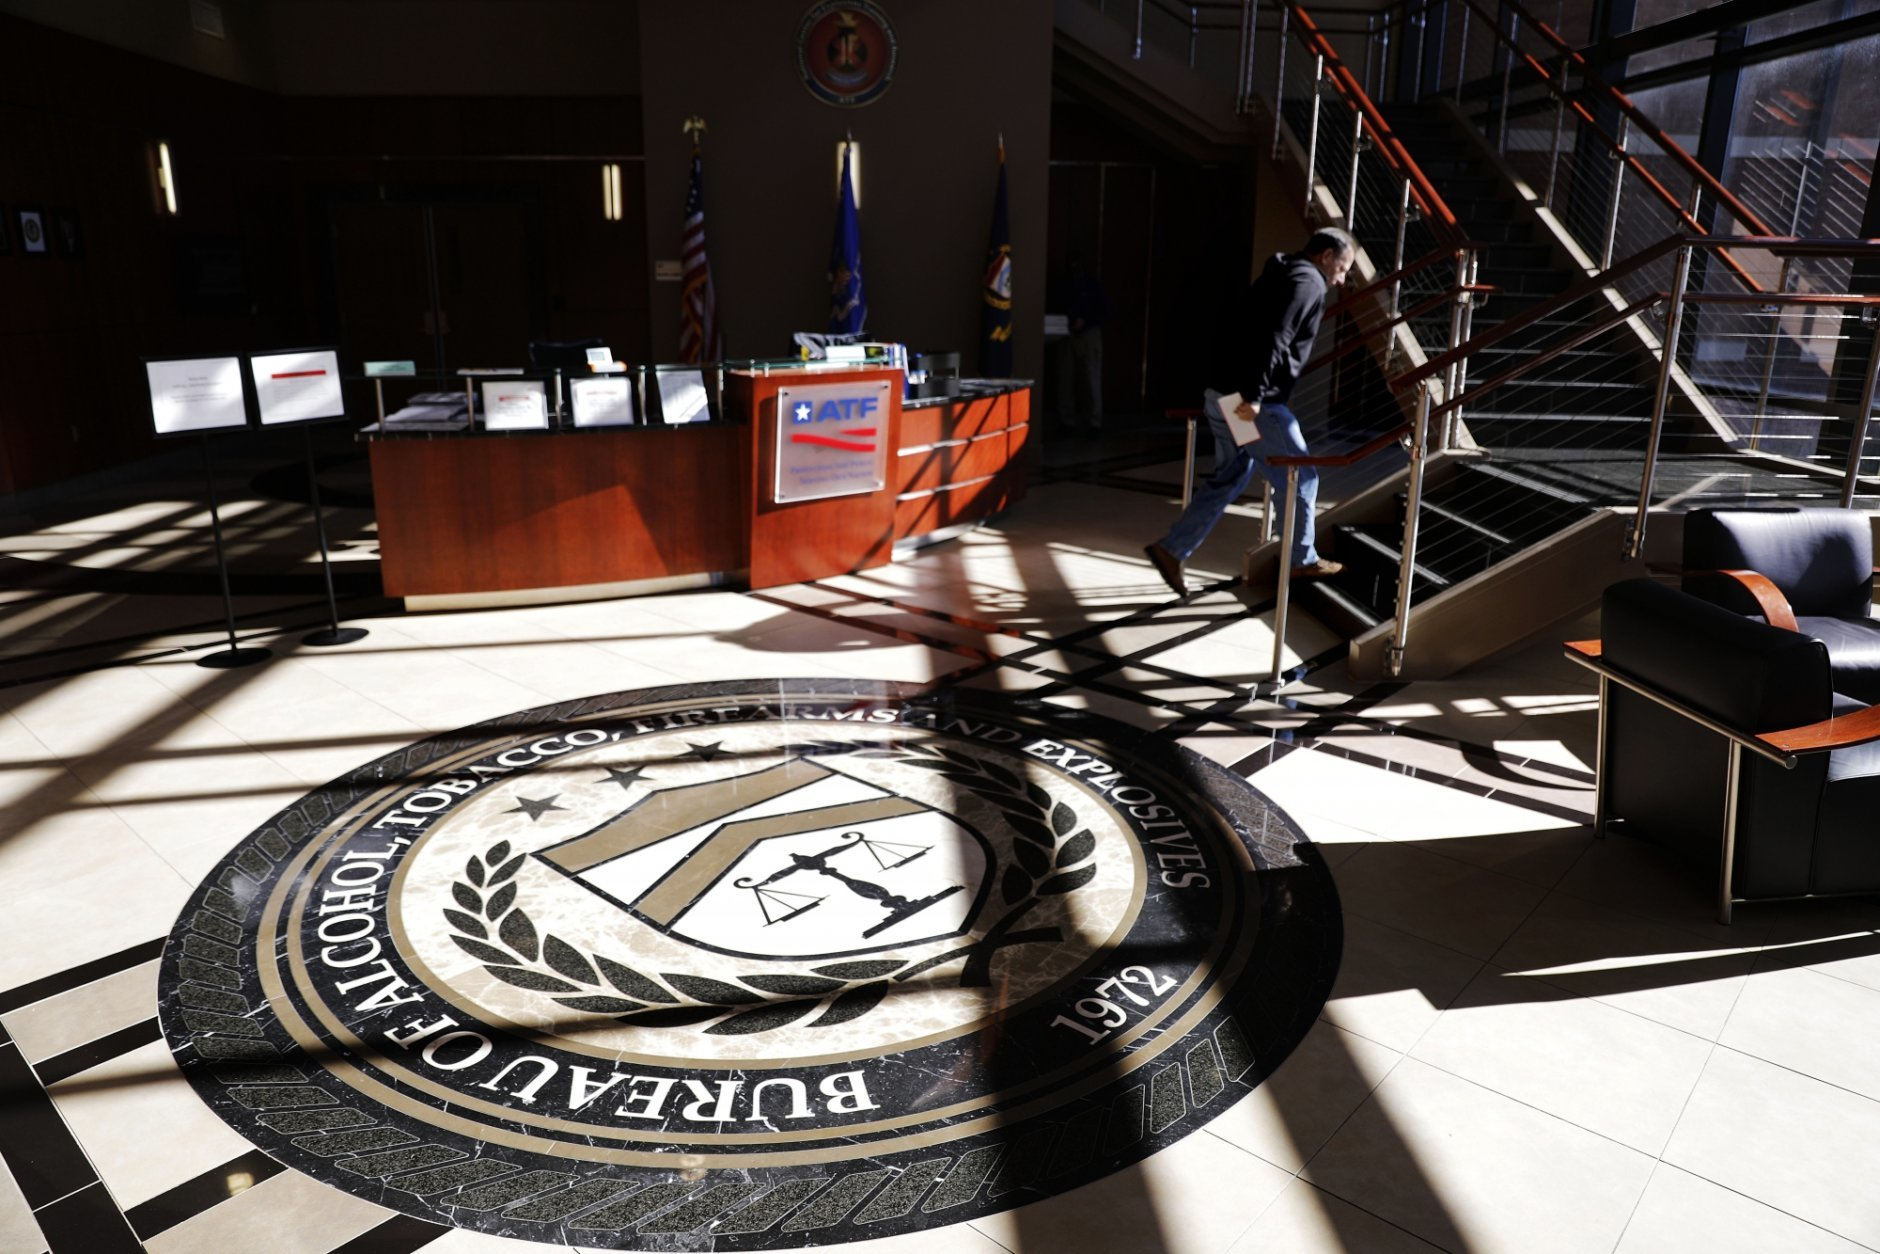 A worker walks through the empty lobby of the federal Bureau of Alcohol, Tobacco, Firearms and Explosives' National Center for Explosives Training and Research in Huntsville, Ala., Wednesday, Jan. 9, 2019. About 70 federal agencies are located at the Army's sprawling Redstone Arsenal, and more than half the area economy is tied to Washington spending. (AP Photo/David Goldman)